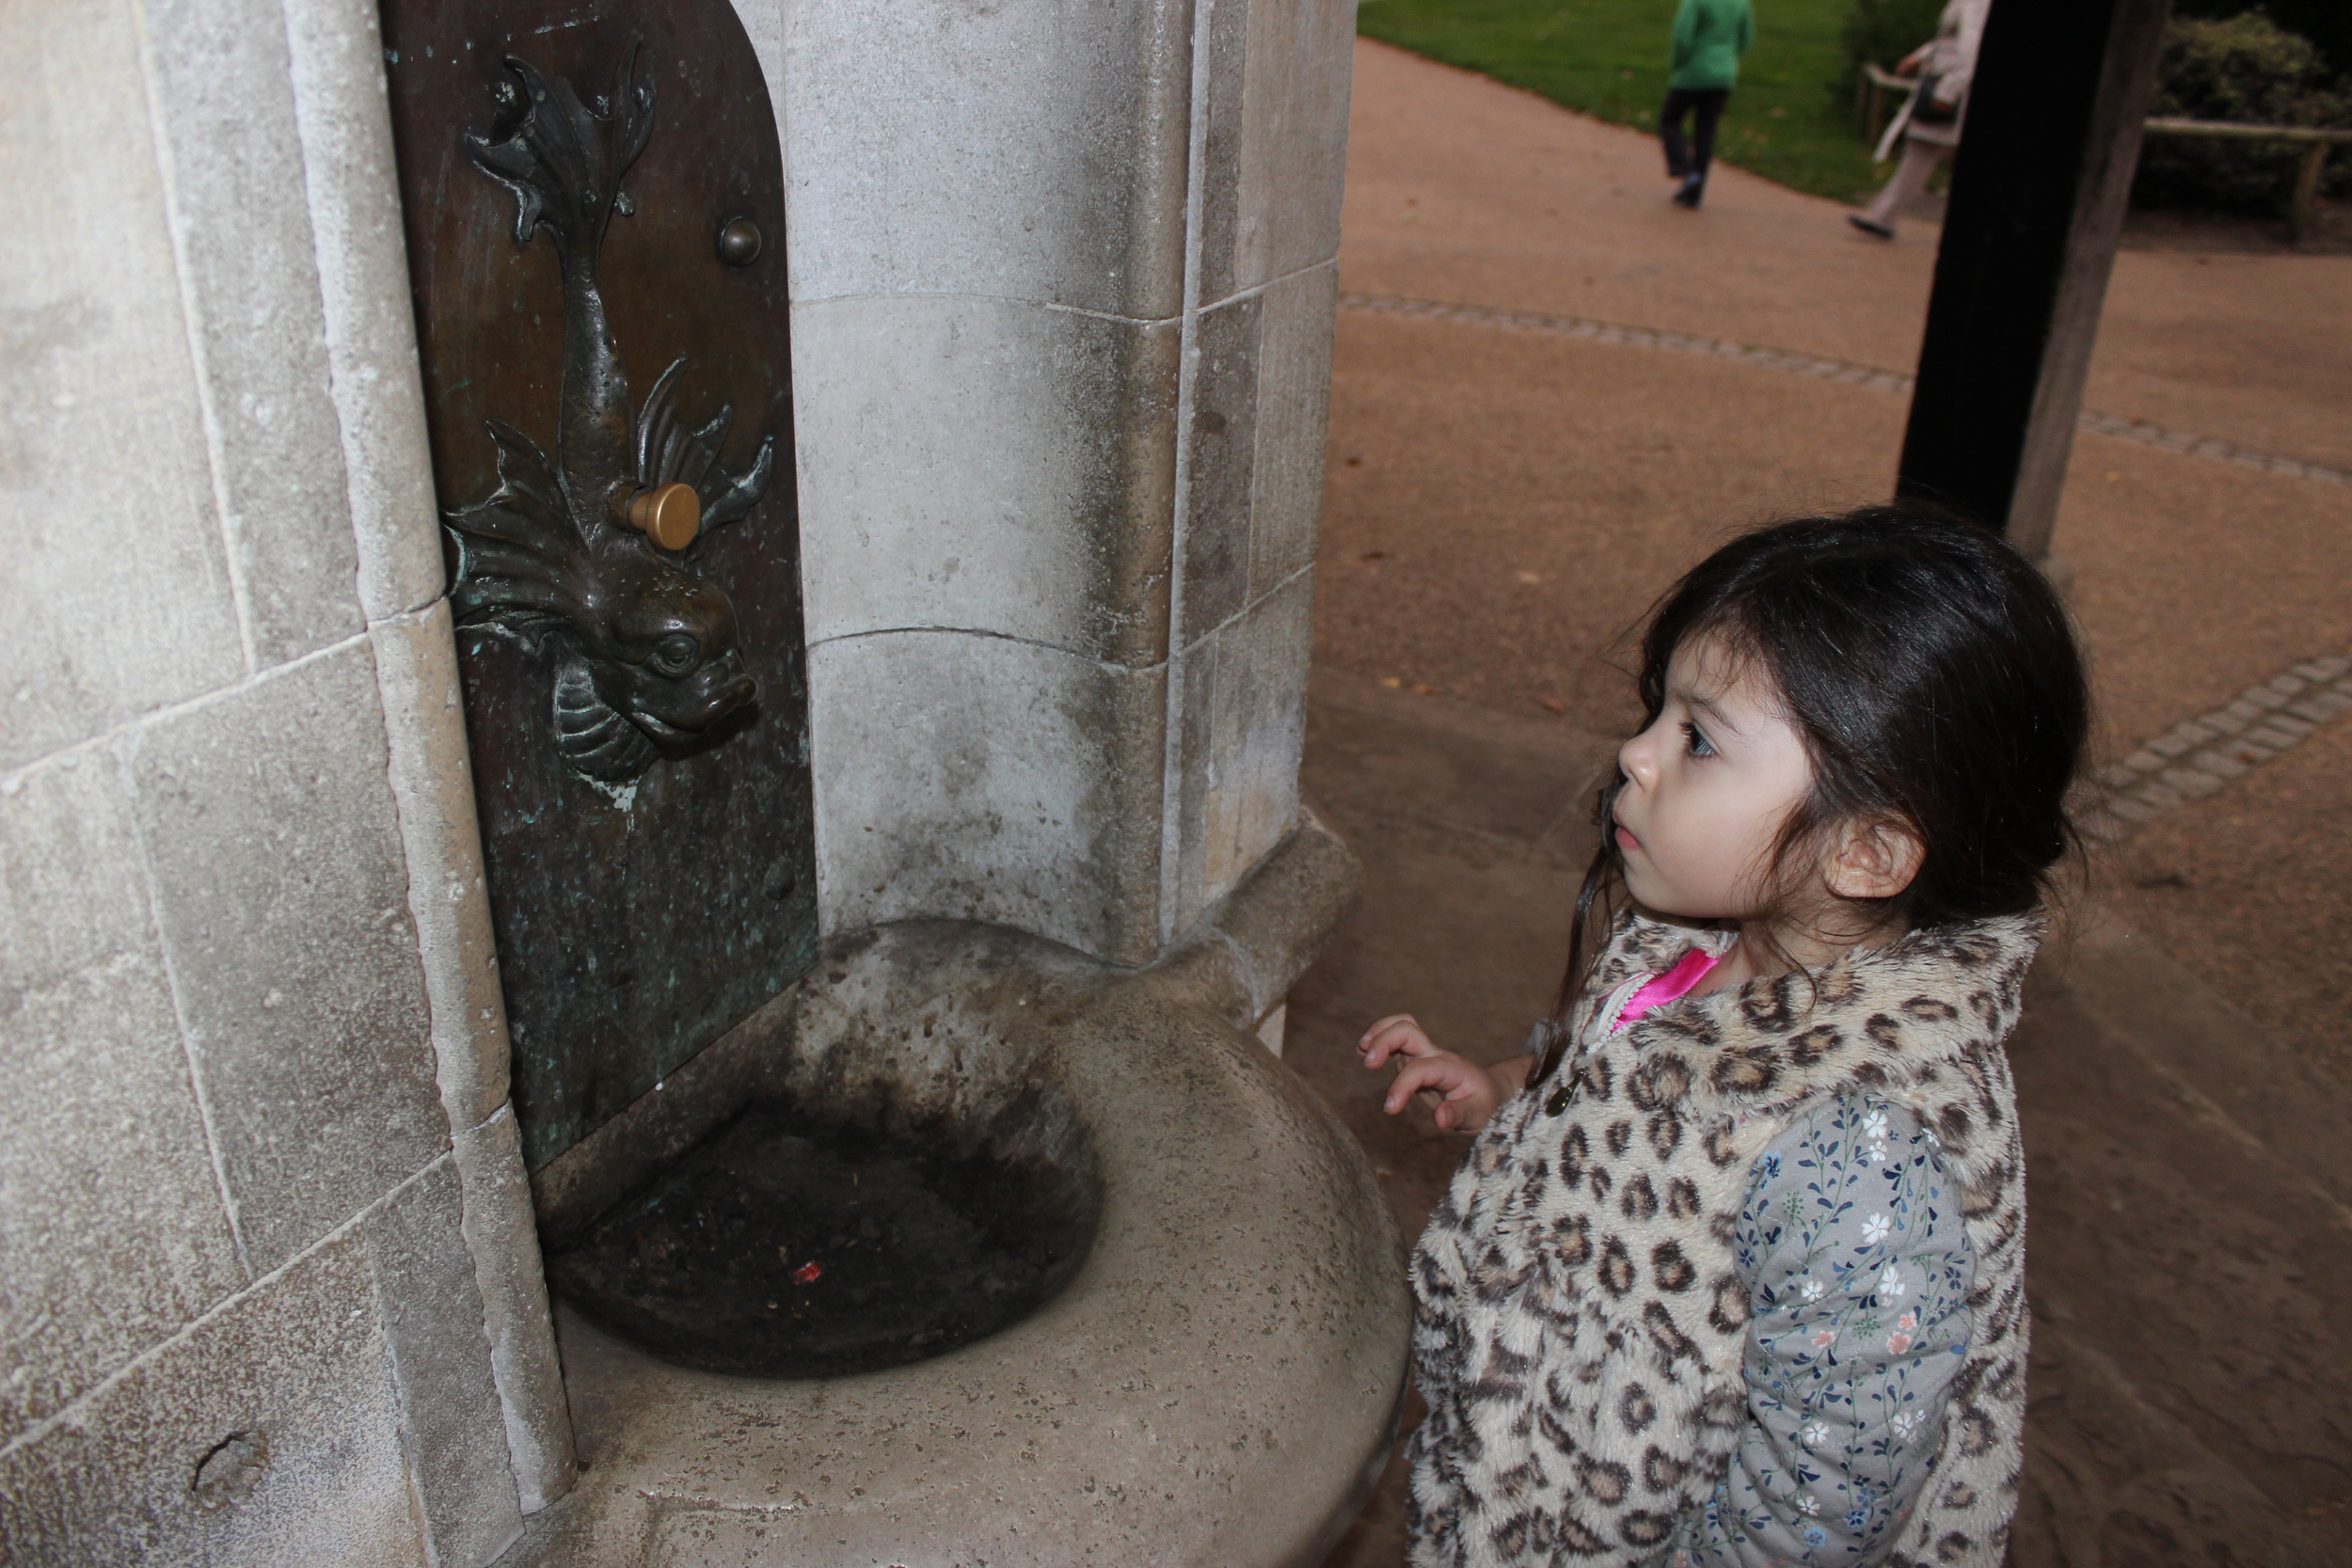 Curiosity at the old drinking fountains in Kensington Gardens